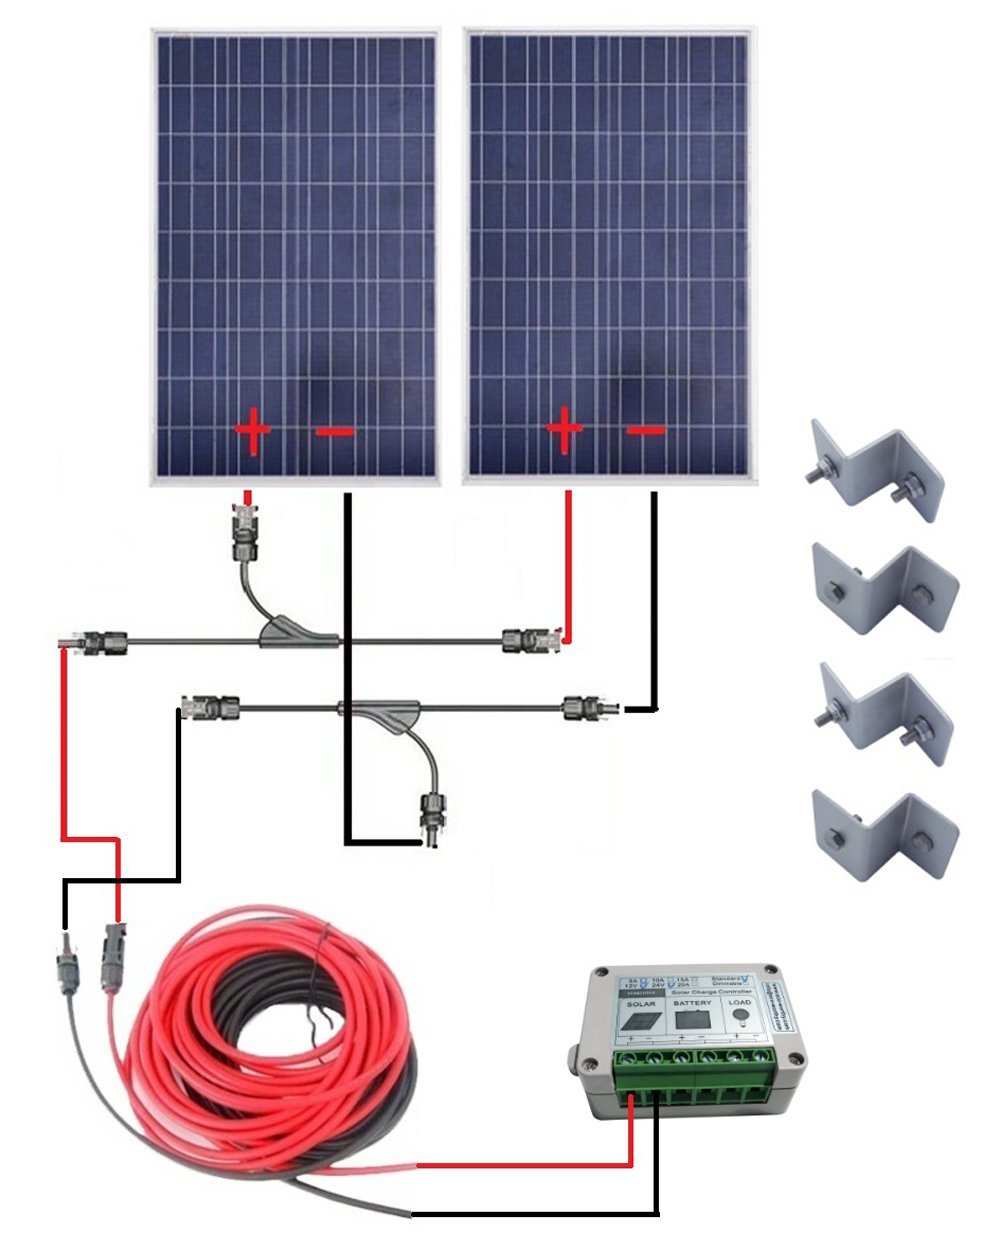 DE stock, 200w solar system for home no tax, COMPLETE KIT 200W Solar Panel cells off grid system, * 100w 12v monocrystalline solar panel for 12v battery rv boat car home solar power